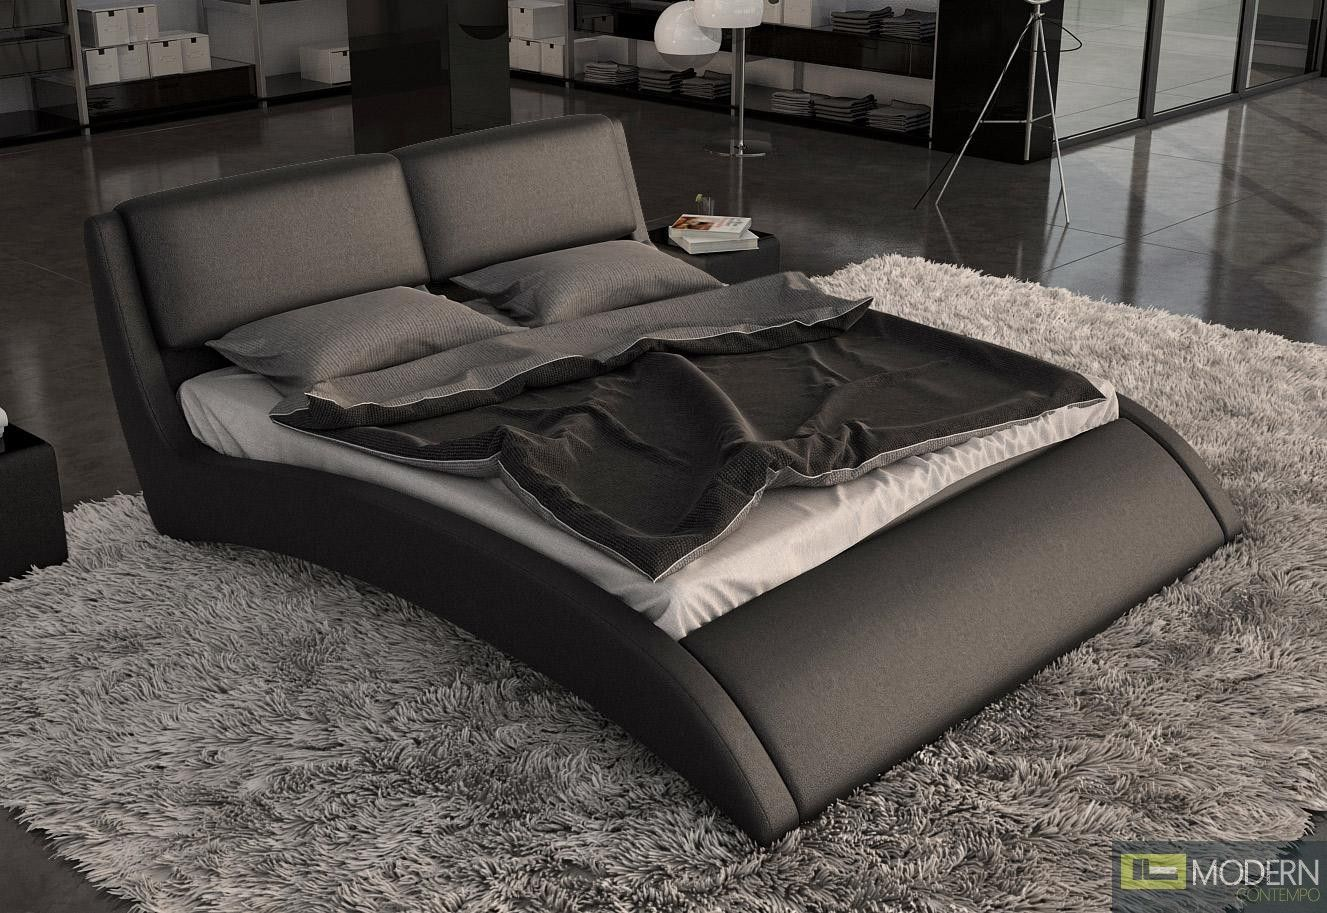 This Modern Bed Is Upholstered In Smooth Black Leather And Has A